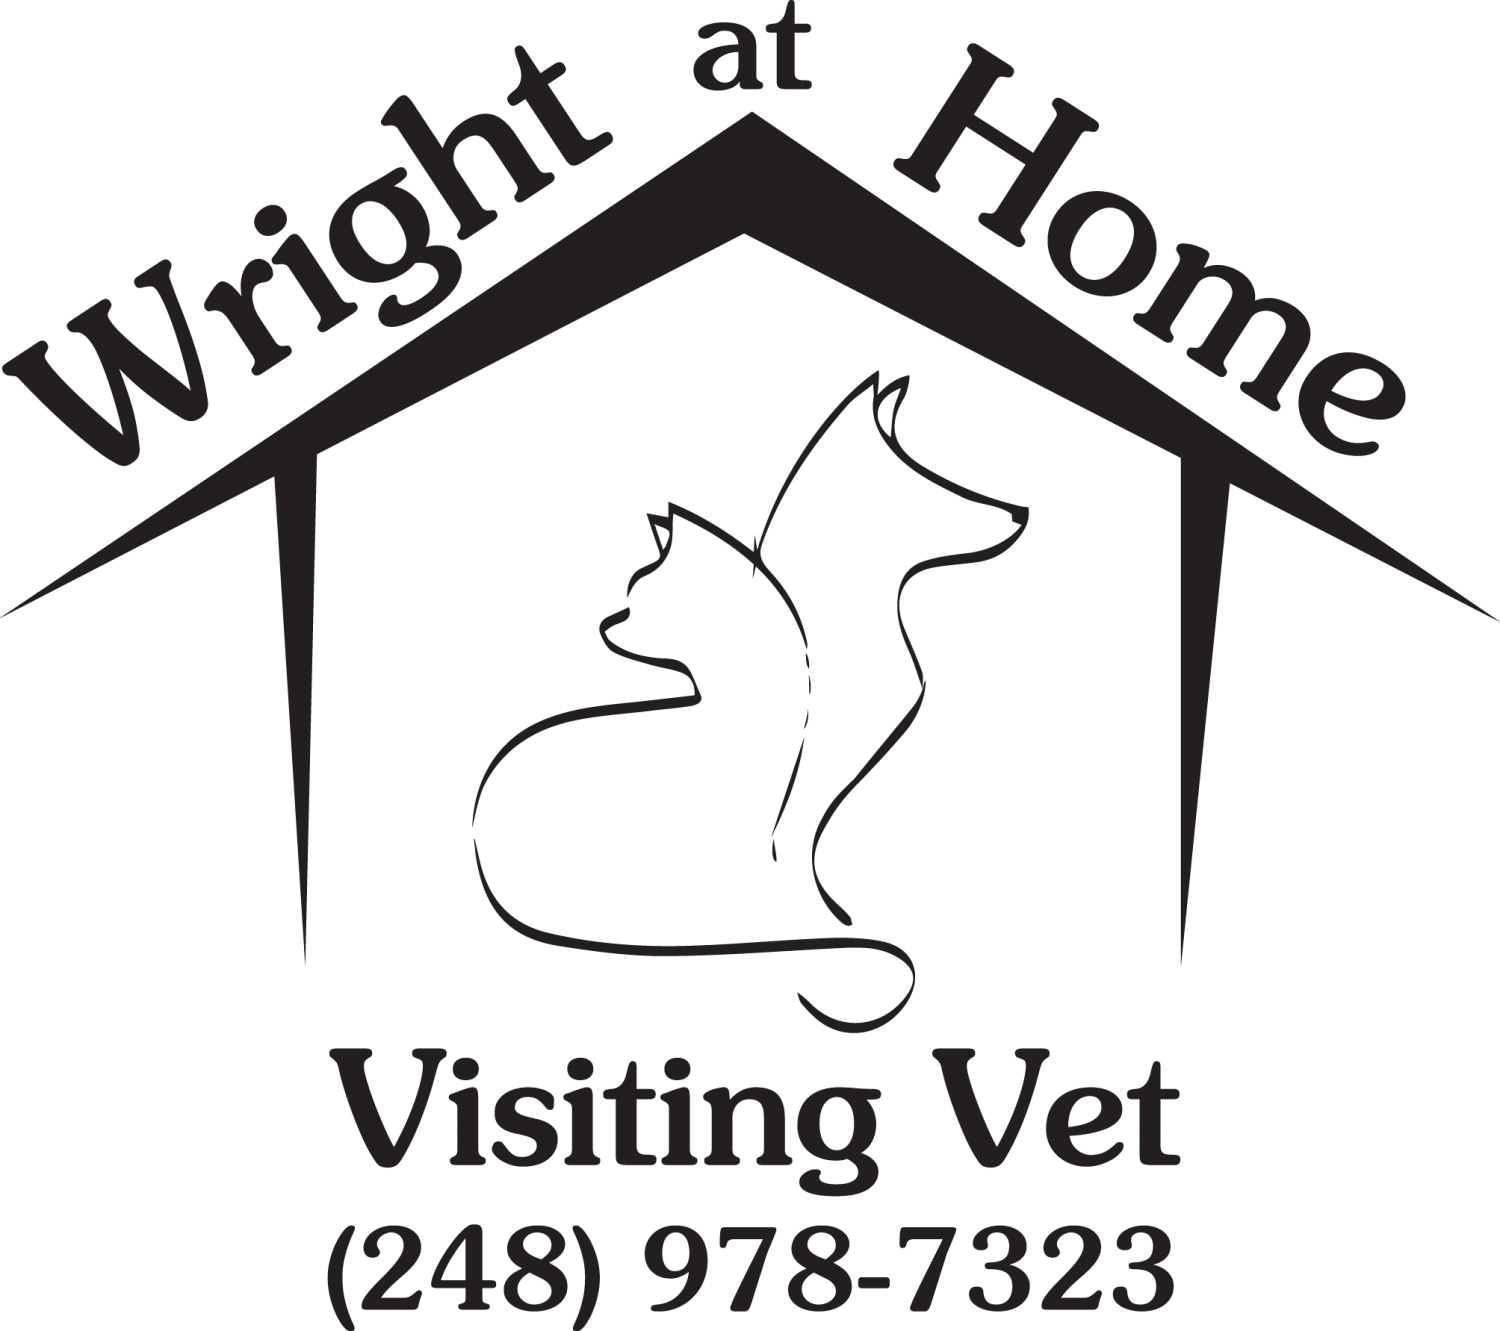 HOUSE CALL VET SERVING WATERFORD & SURROUNDING AREA!